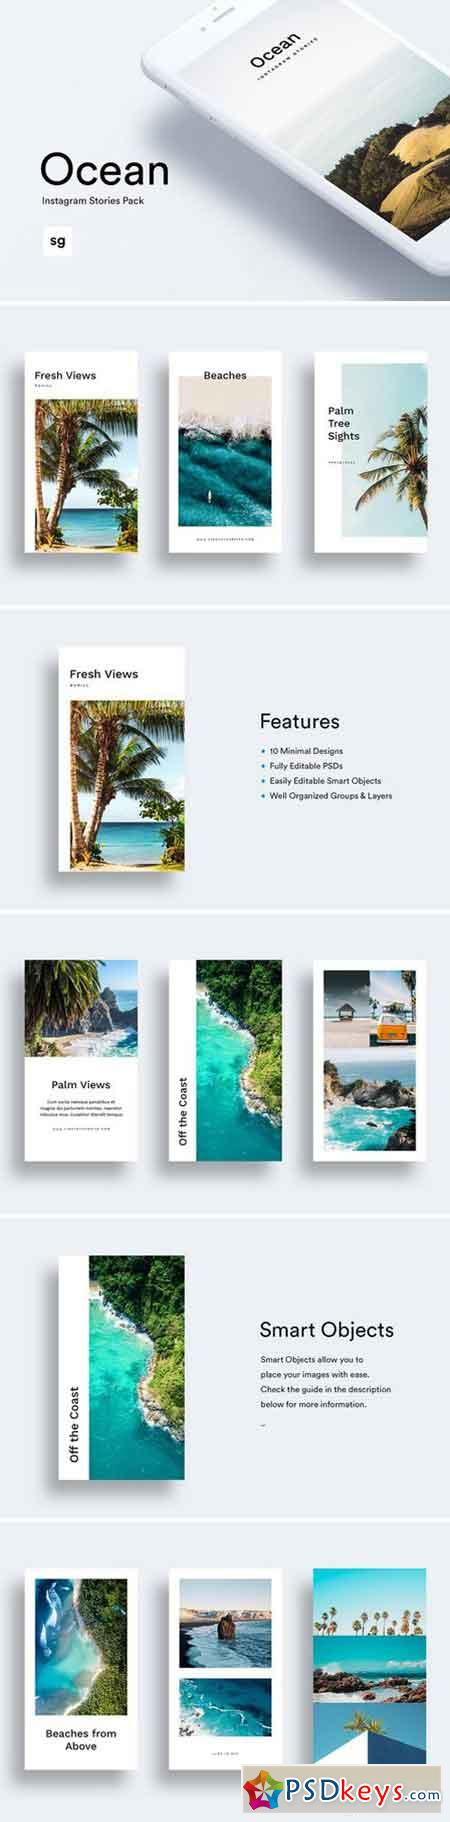 Ocean Instagram Stories Pack 2456929